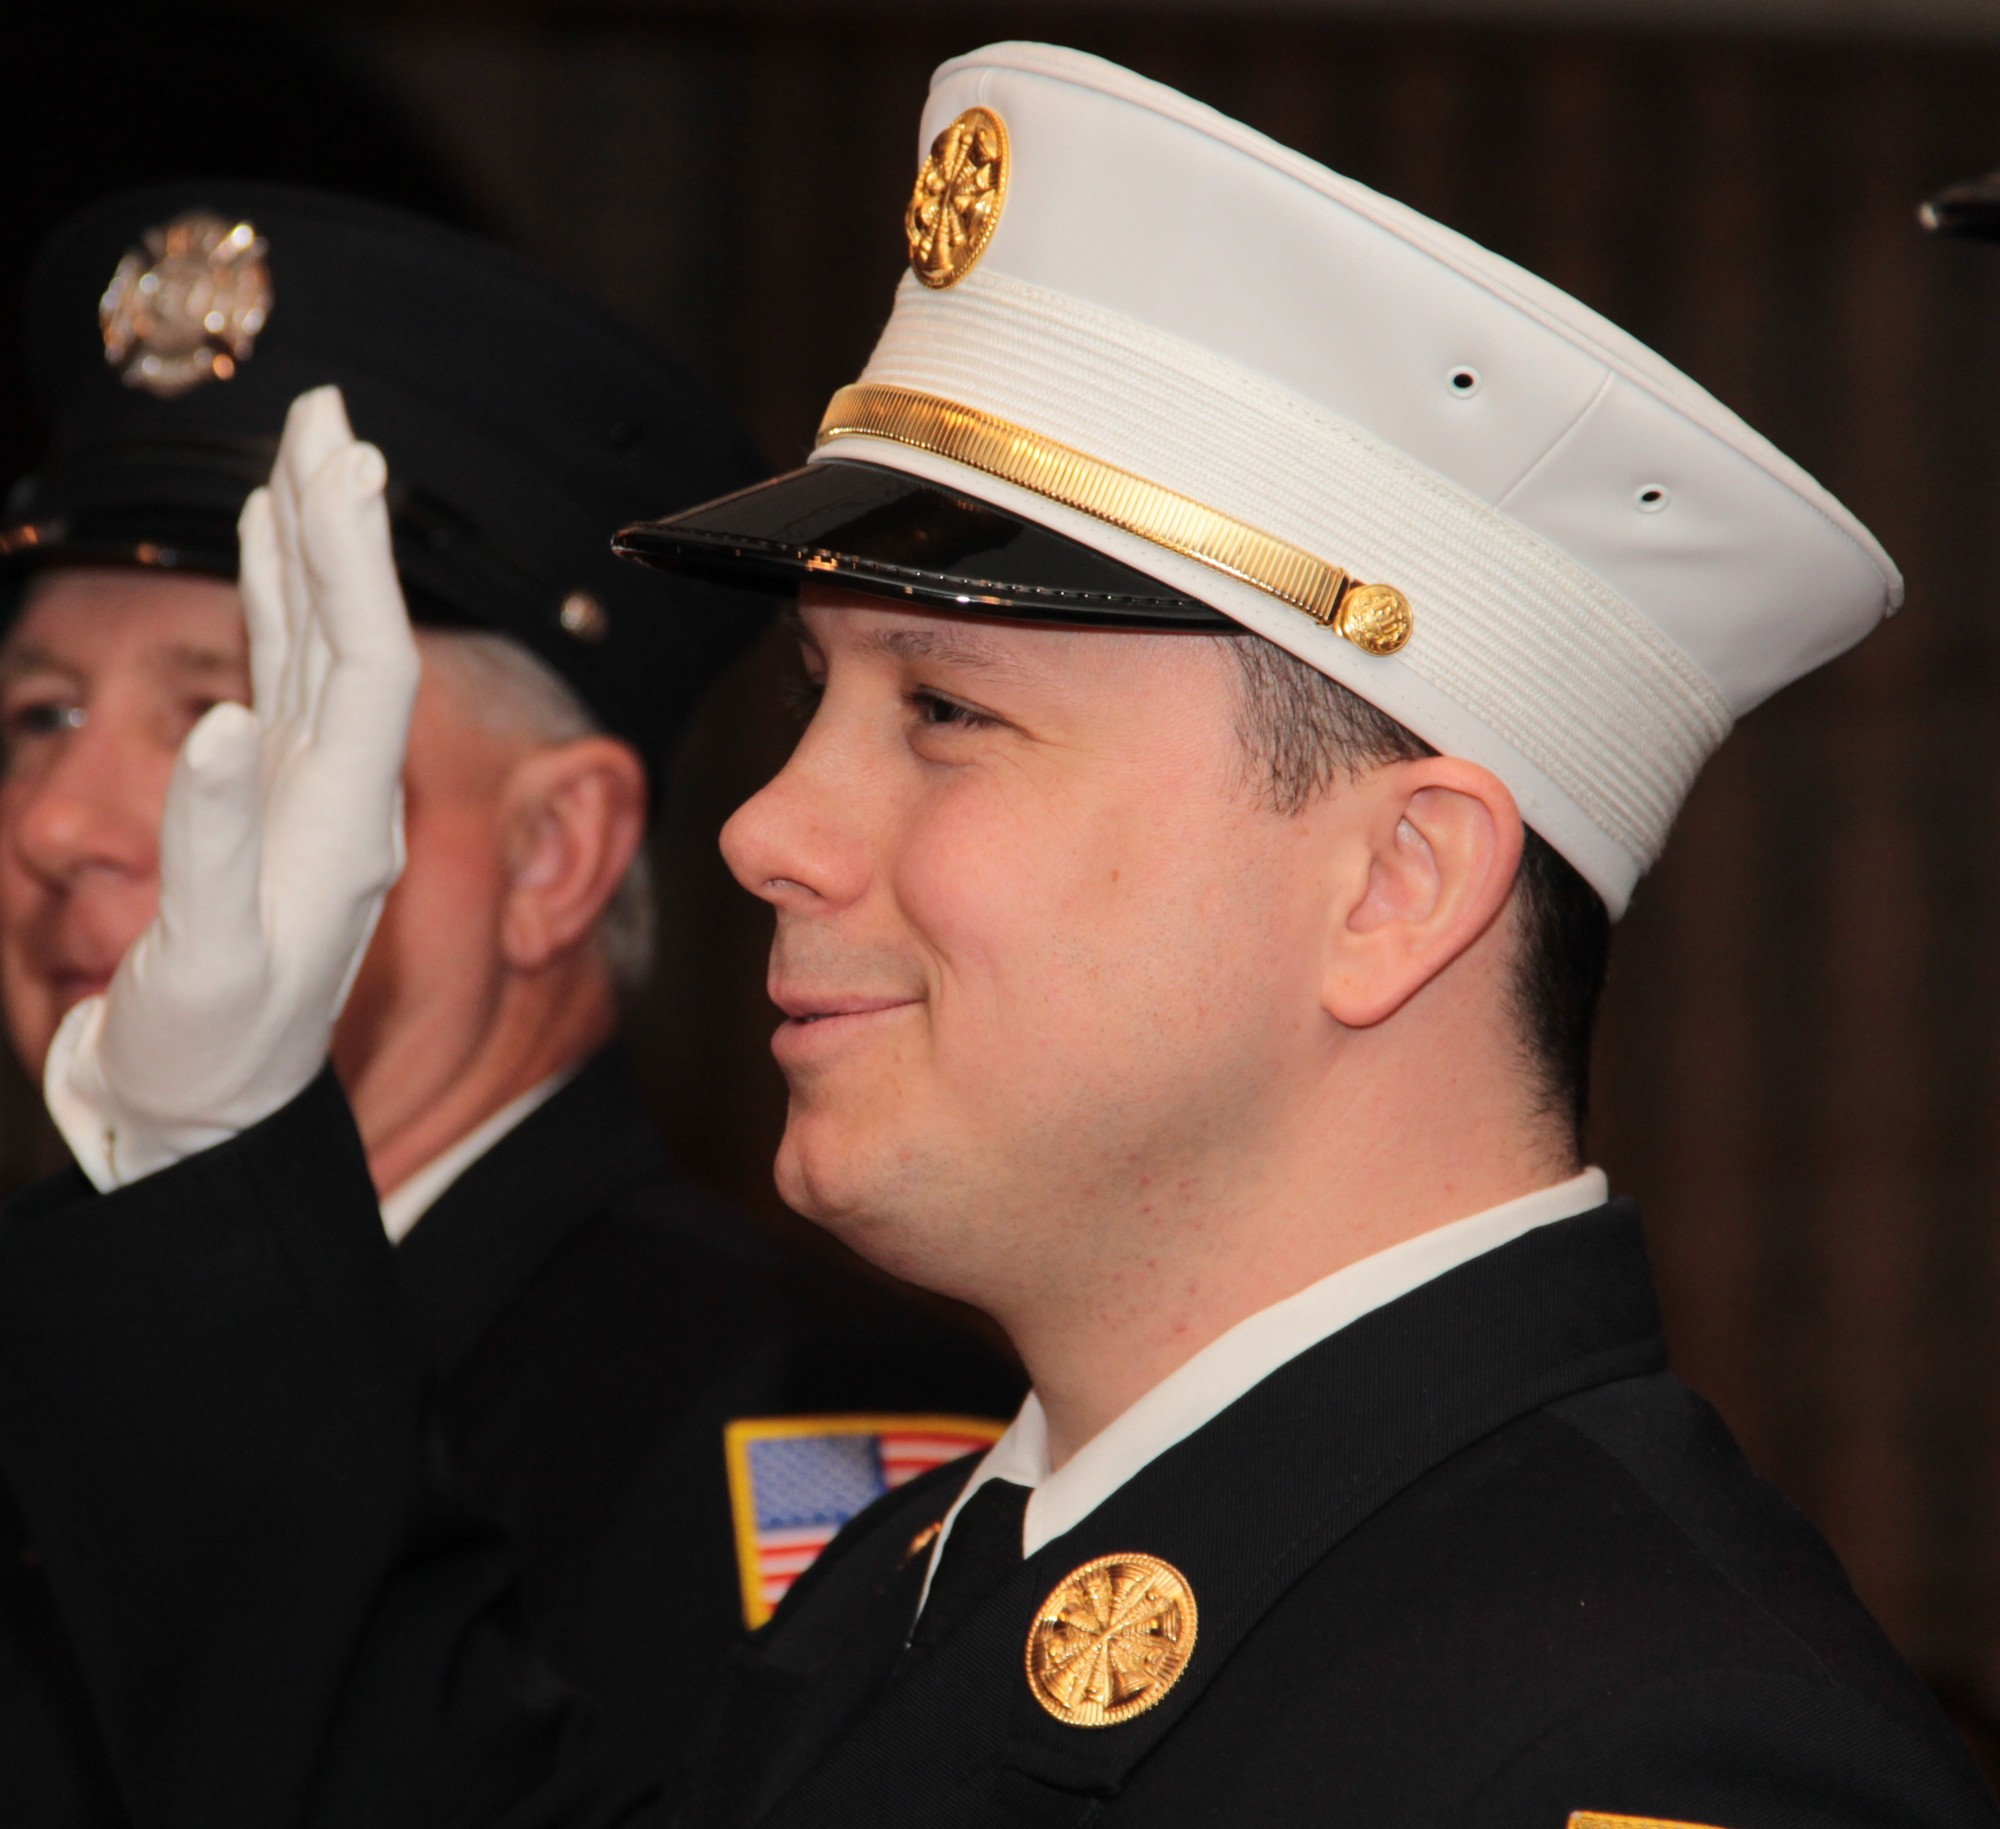 Brian Schriefer was sworn in as the Elmont Fire Department�s new chief on April 26.